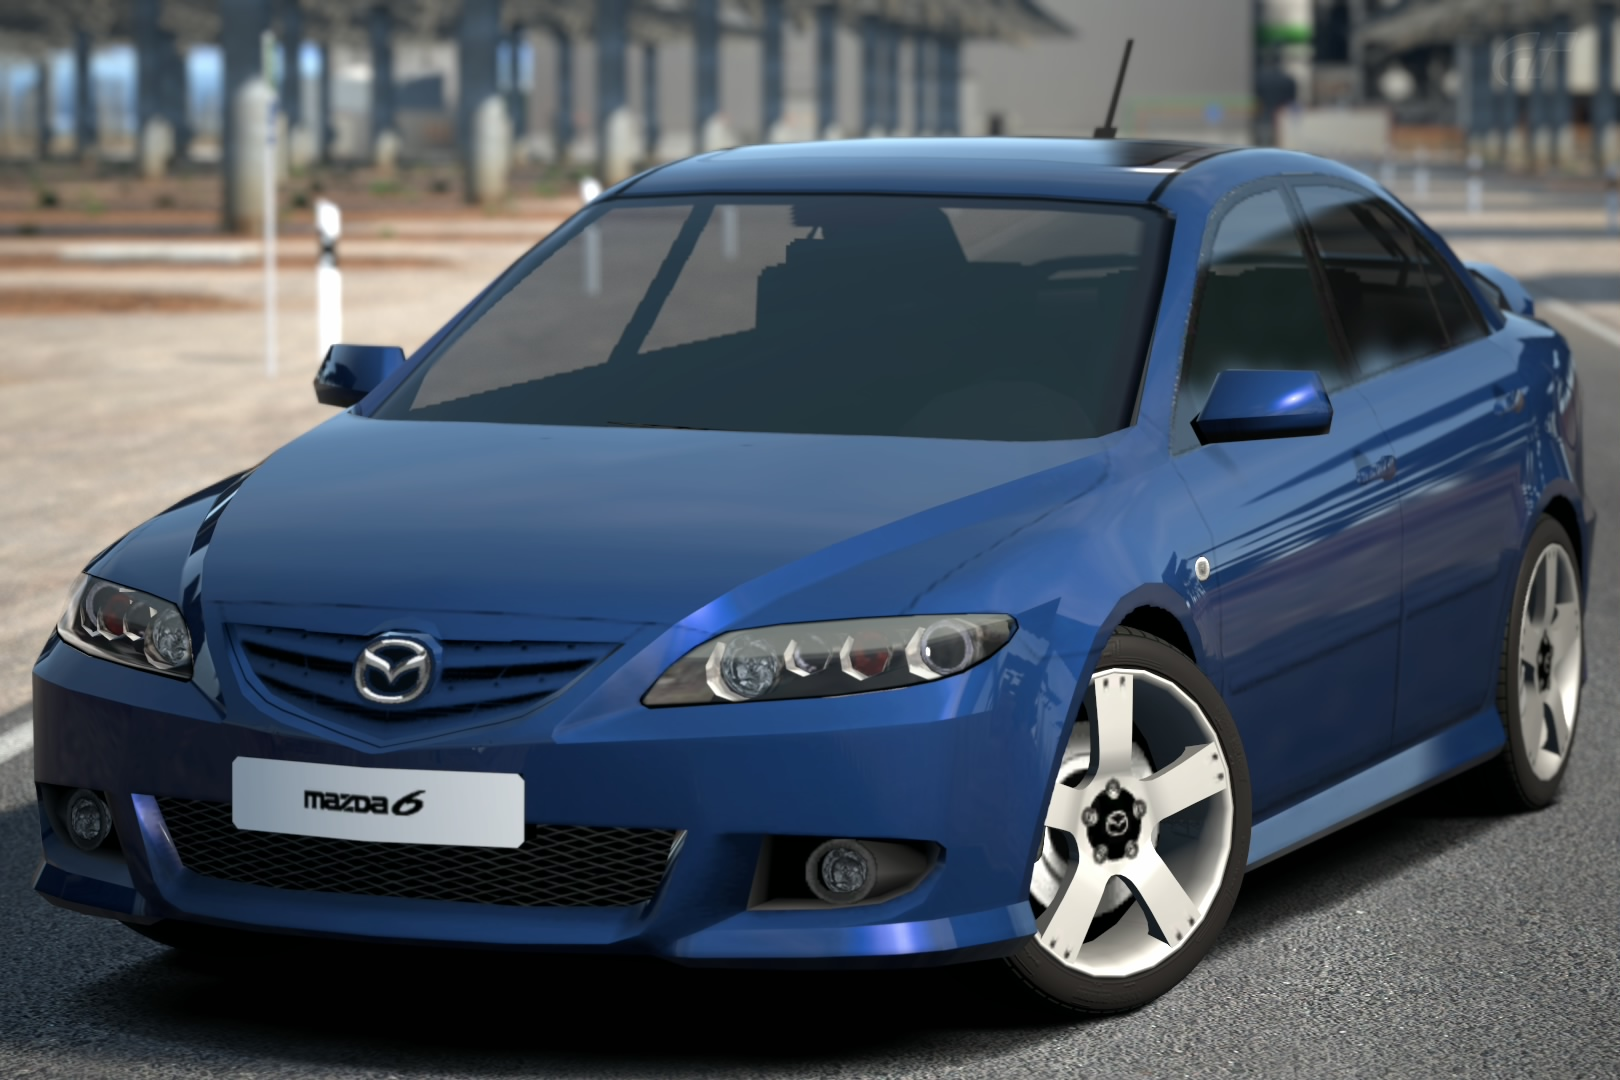 Mazda6 | Gran Turismo Wiki | FANDOM powered by Wikia